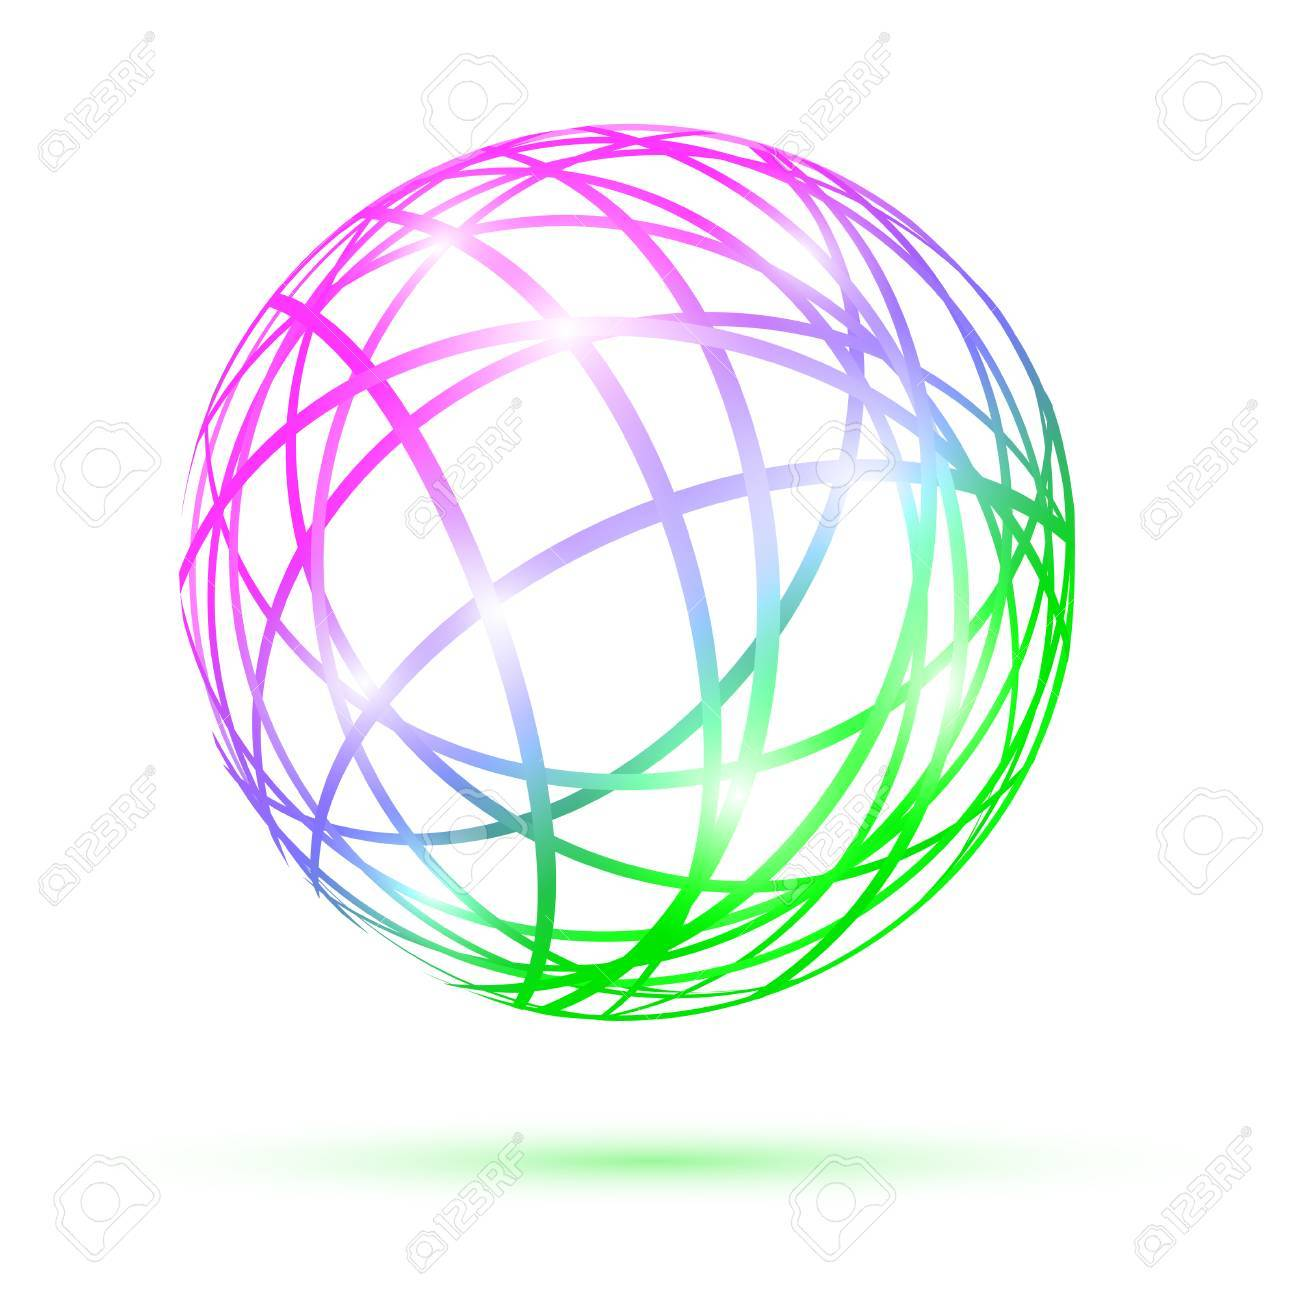 multicolored abstract ball over white background - 9093448